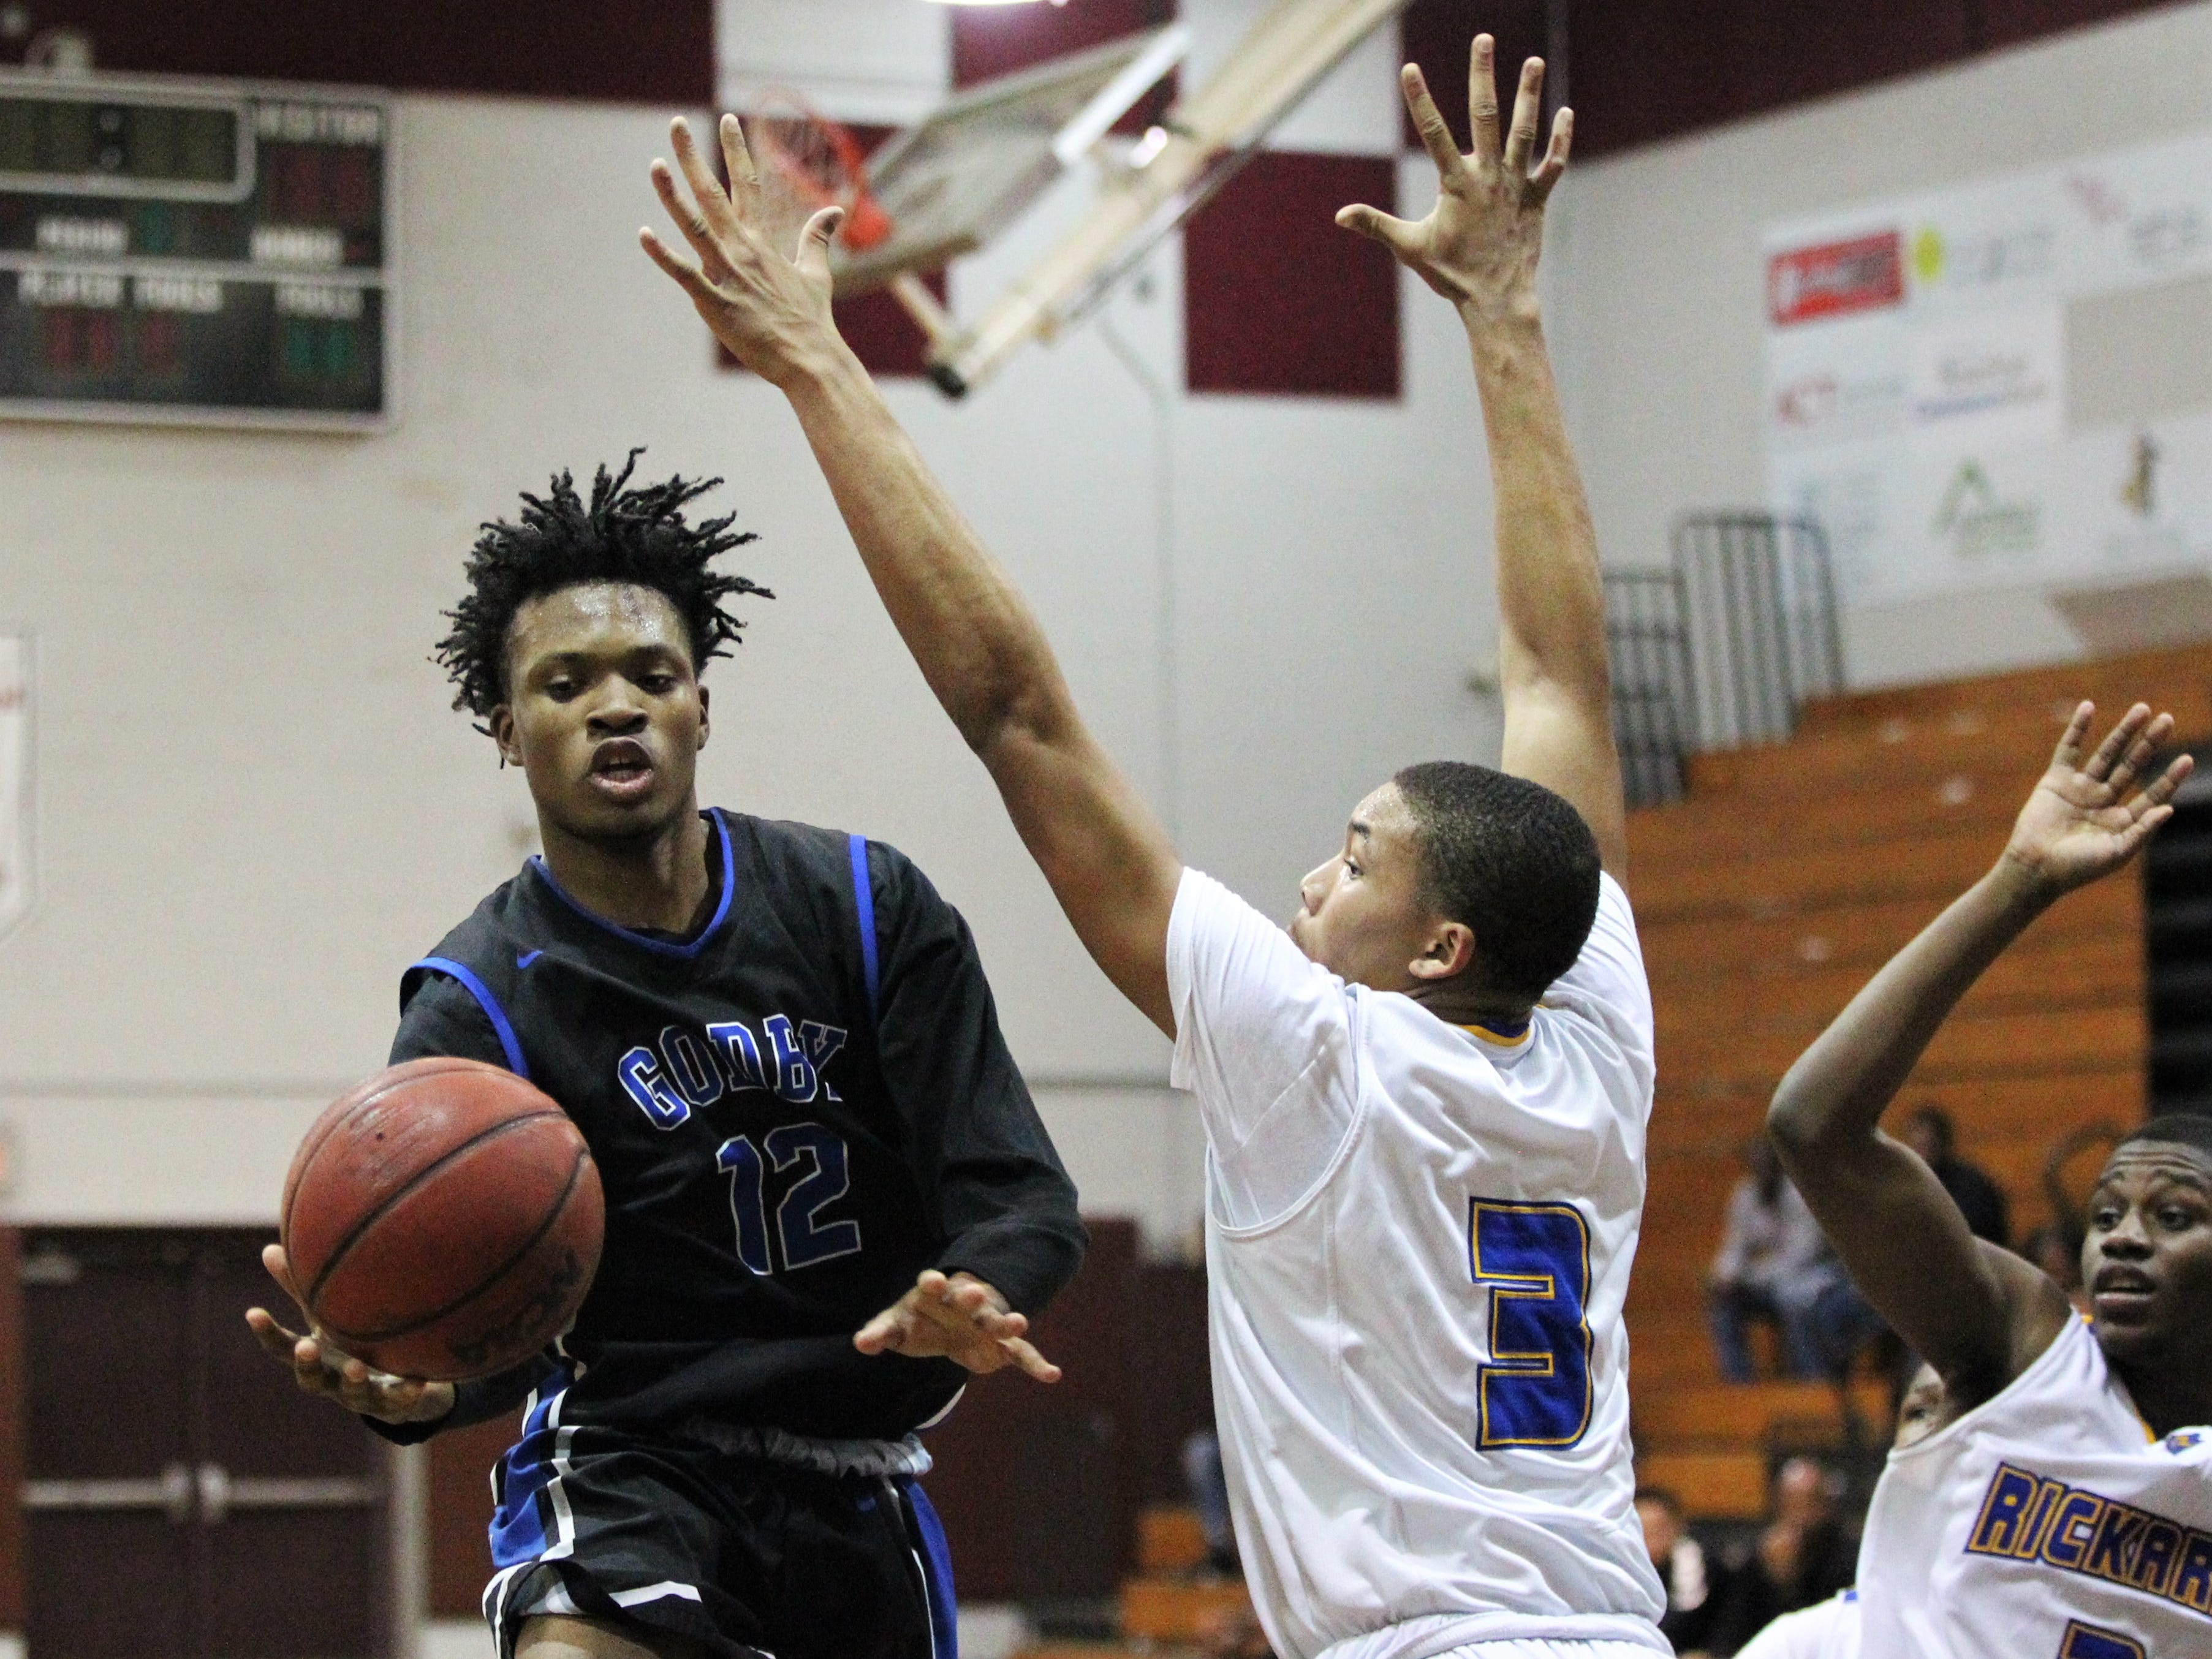 Godby's Steven Lauren tries to get past Rickards' Roddrick Henry as Rickards' boys basketball team beat Godby 58-47 during the District 2-6A championship at Chiles on Feb. 15, 2019.